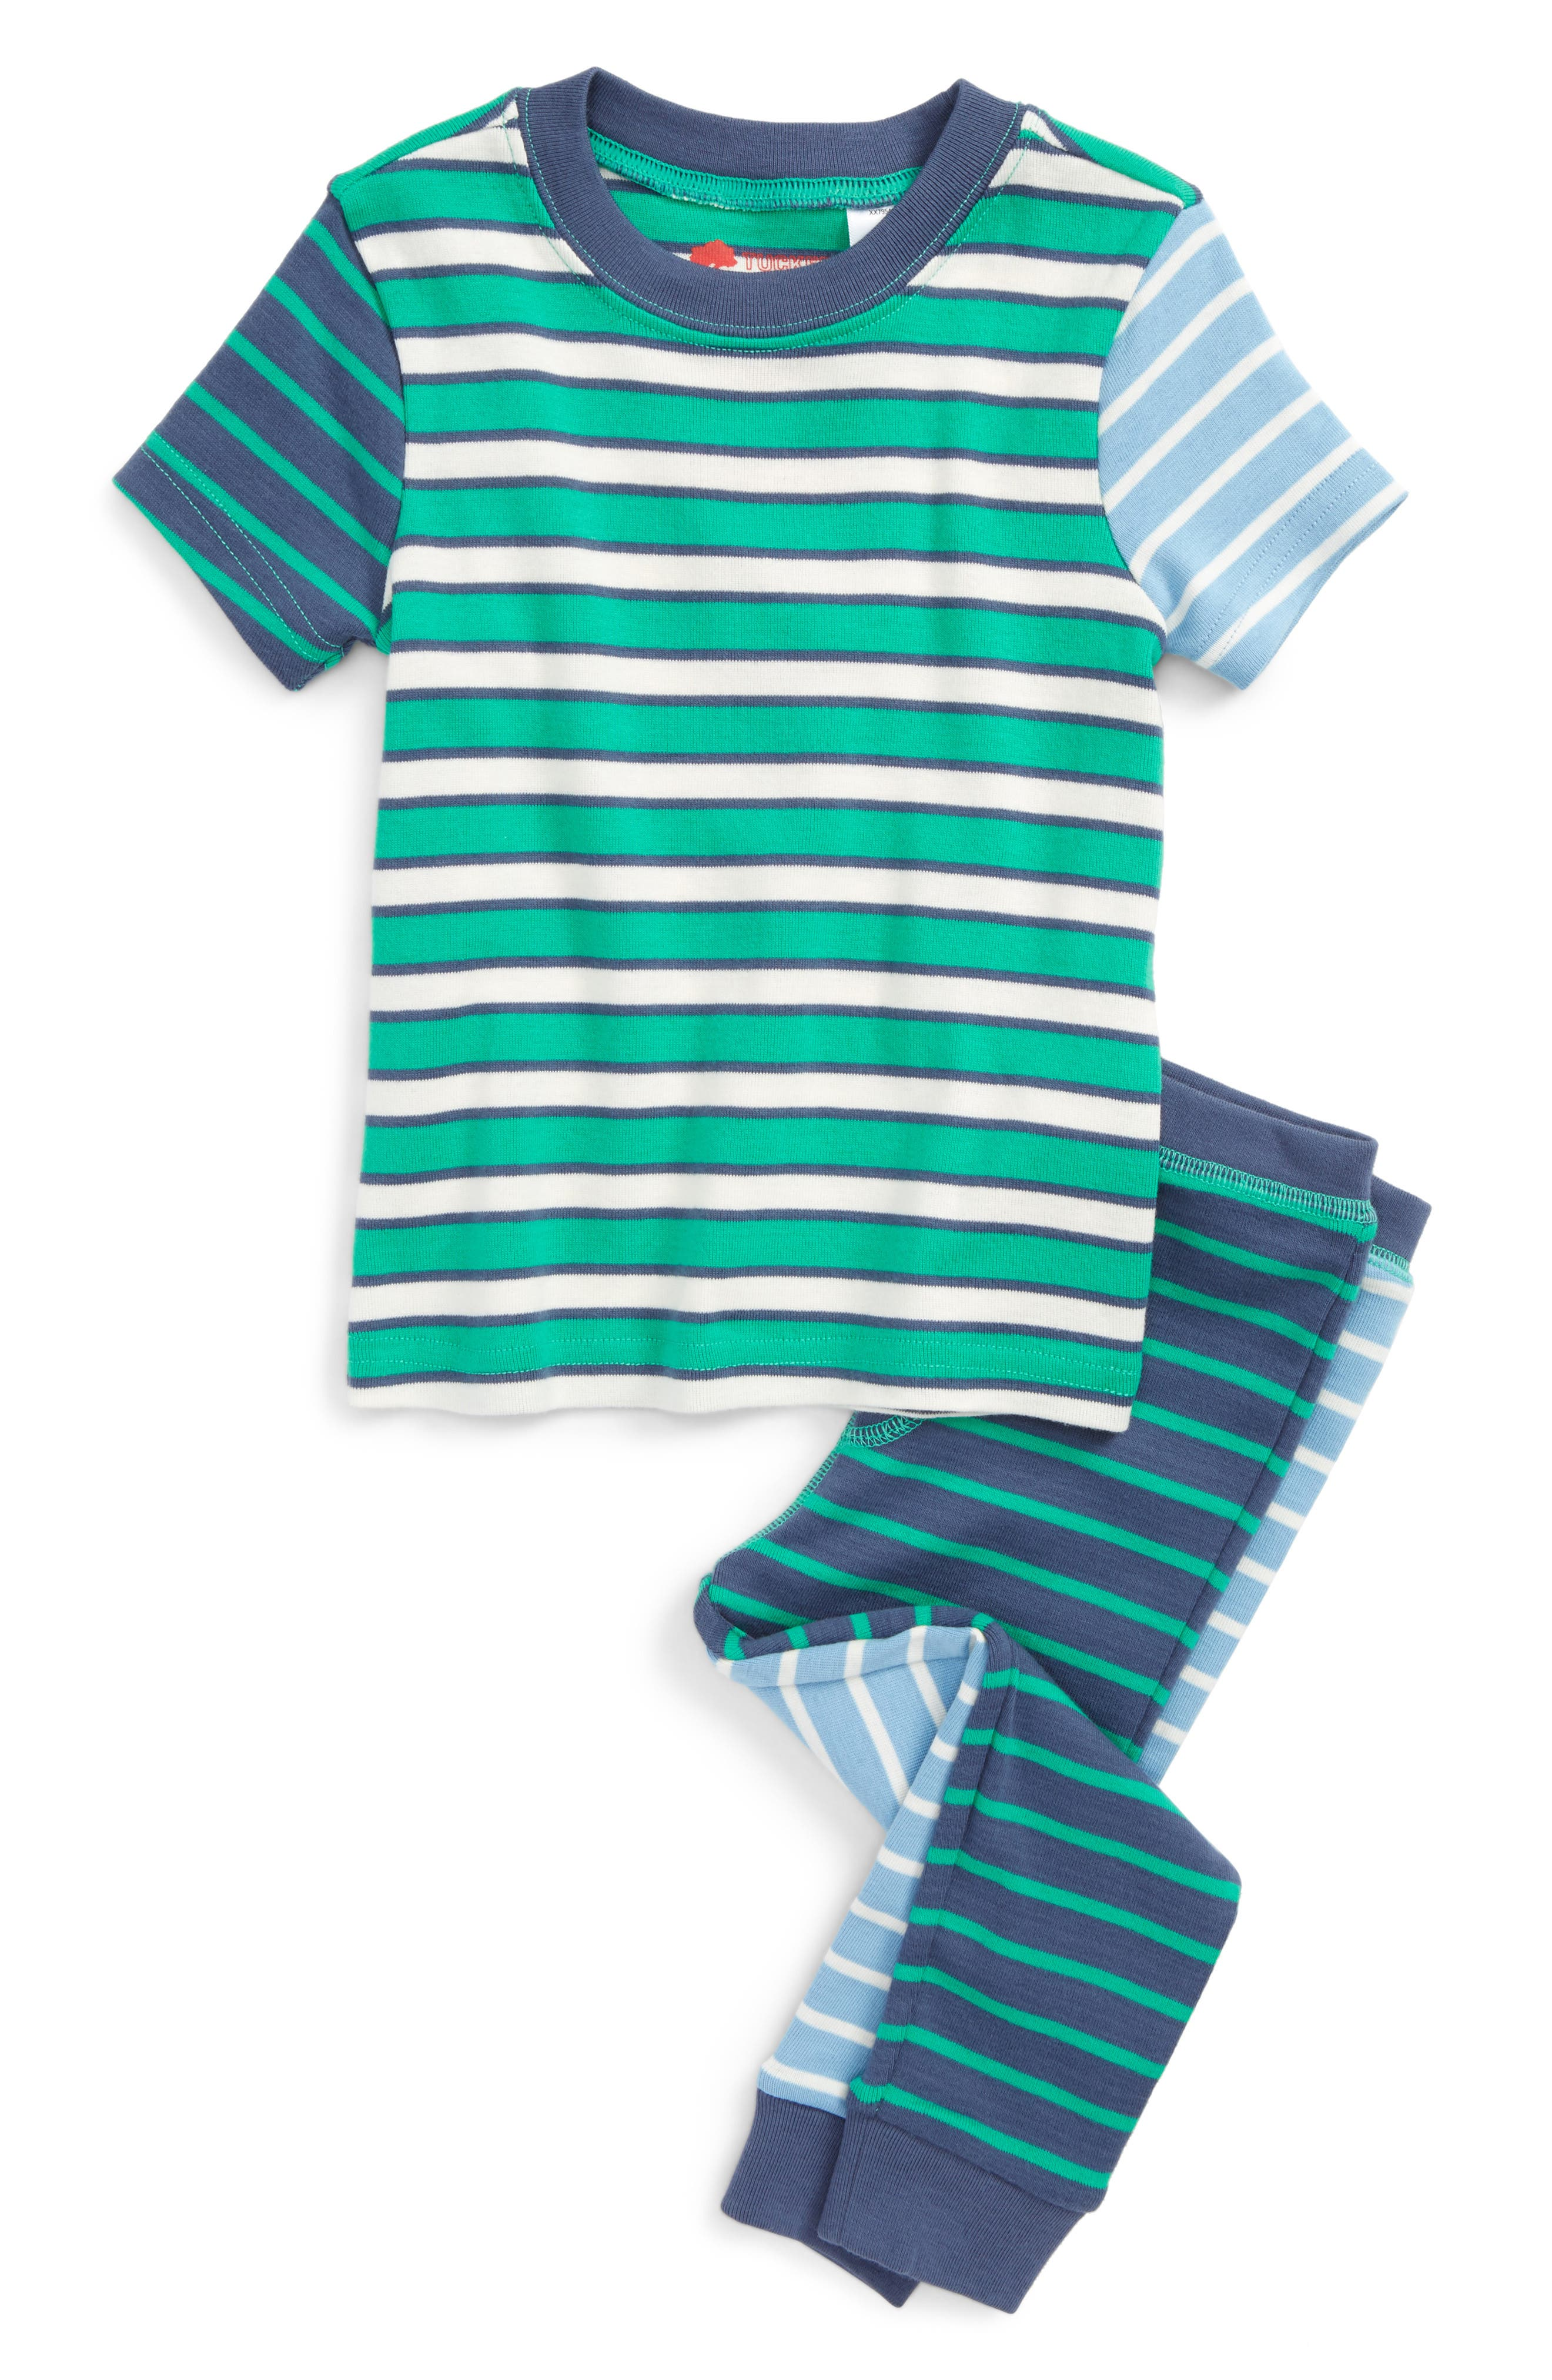 Fitted Two-Piece Pajamas,                         Main,                         color, Green Blarney Multi Stripe